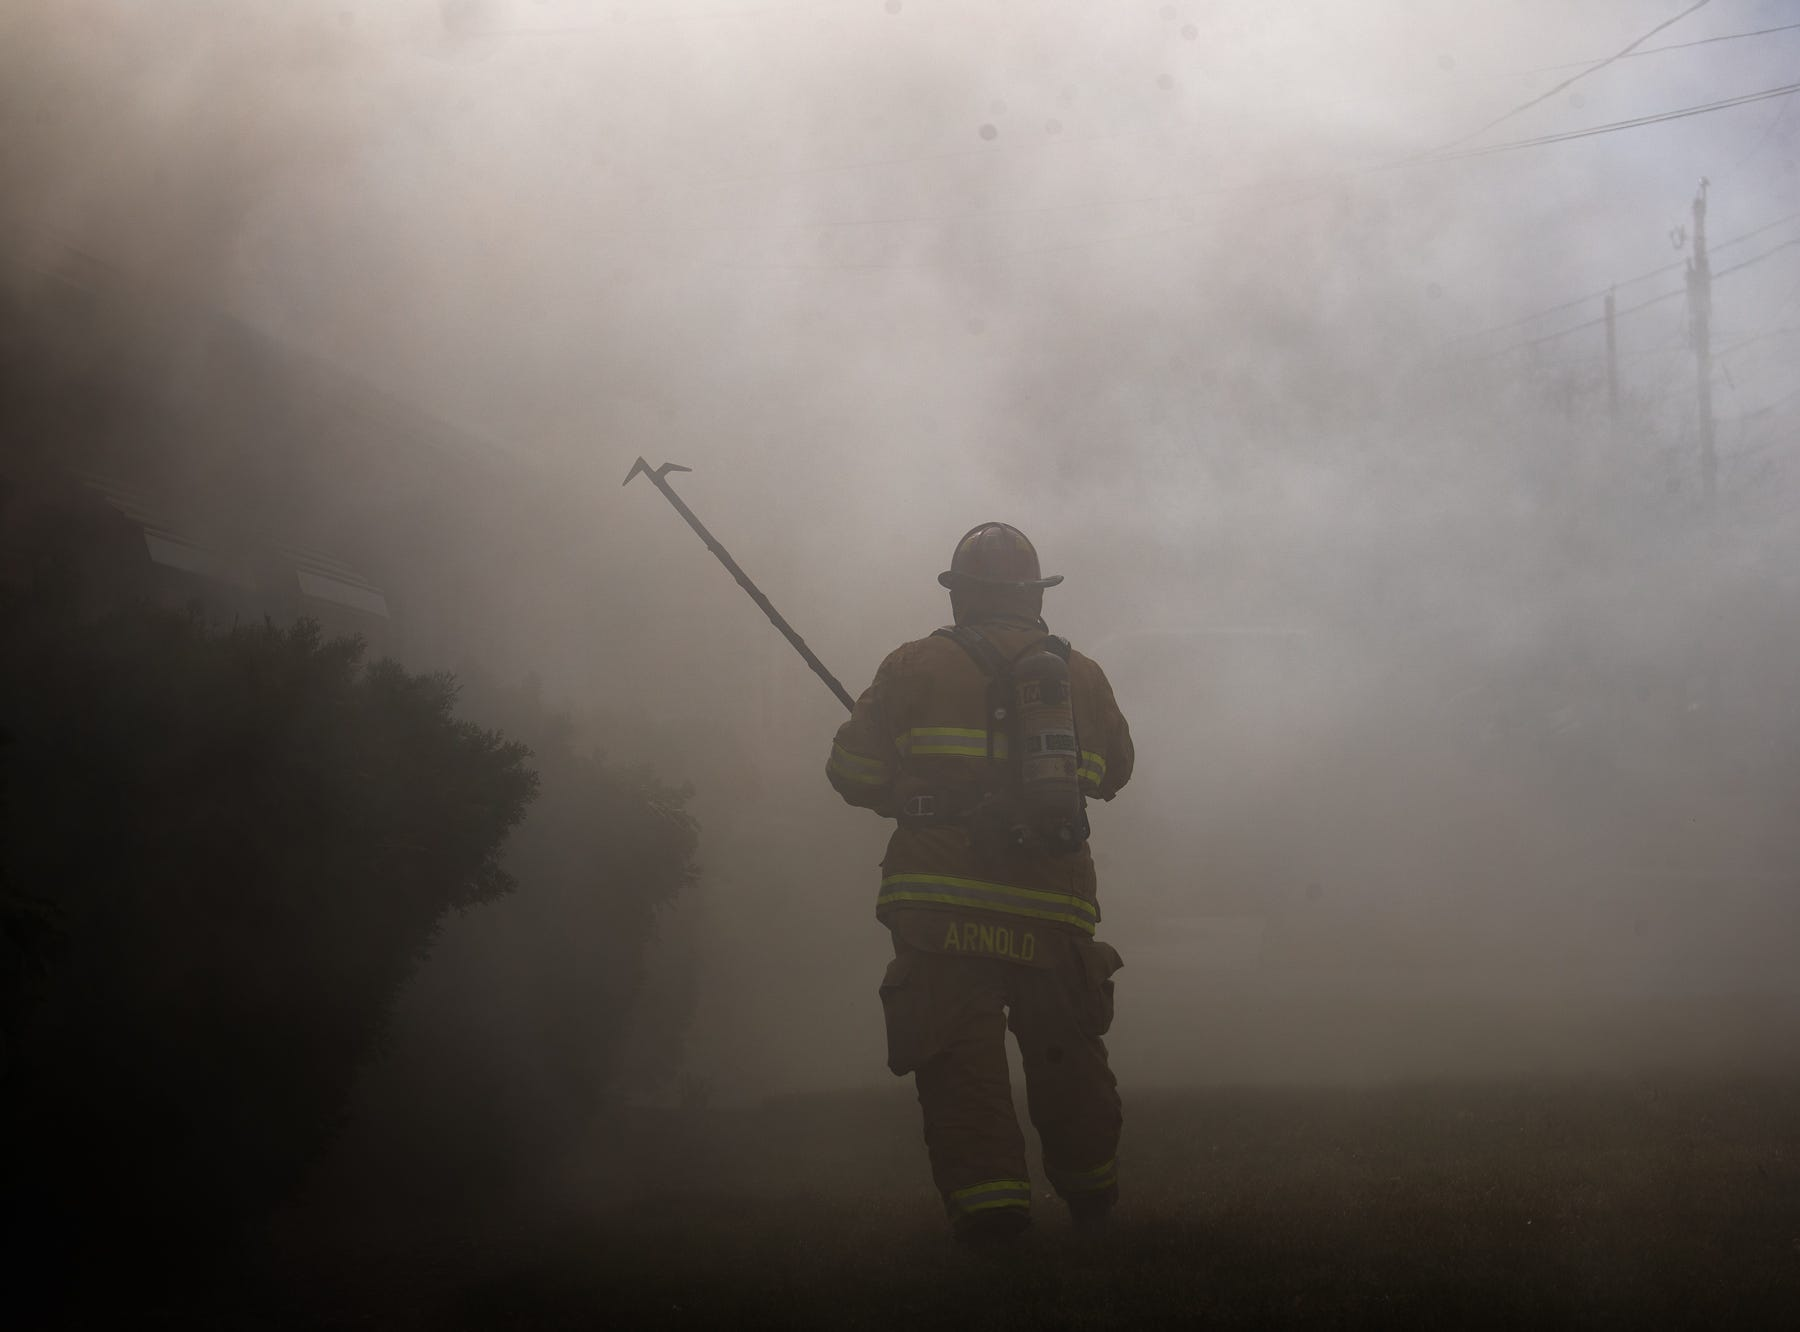 Firefighter Chad Arnold works at the scene of a house fire on the 100 block of Mumma Ave., Saturday, March 30, 2019, in Penn Township. No one was injured in the fire, which appears to have been an accidental fire in the kitchen, said Hanover Area Fire & Rescue Chief Tony Clousher.